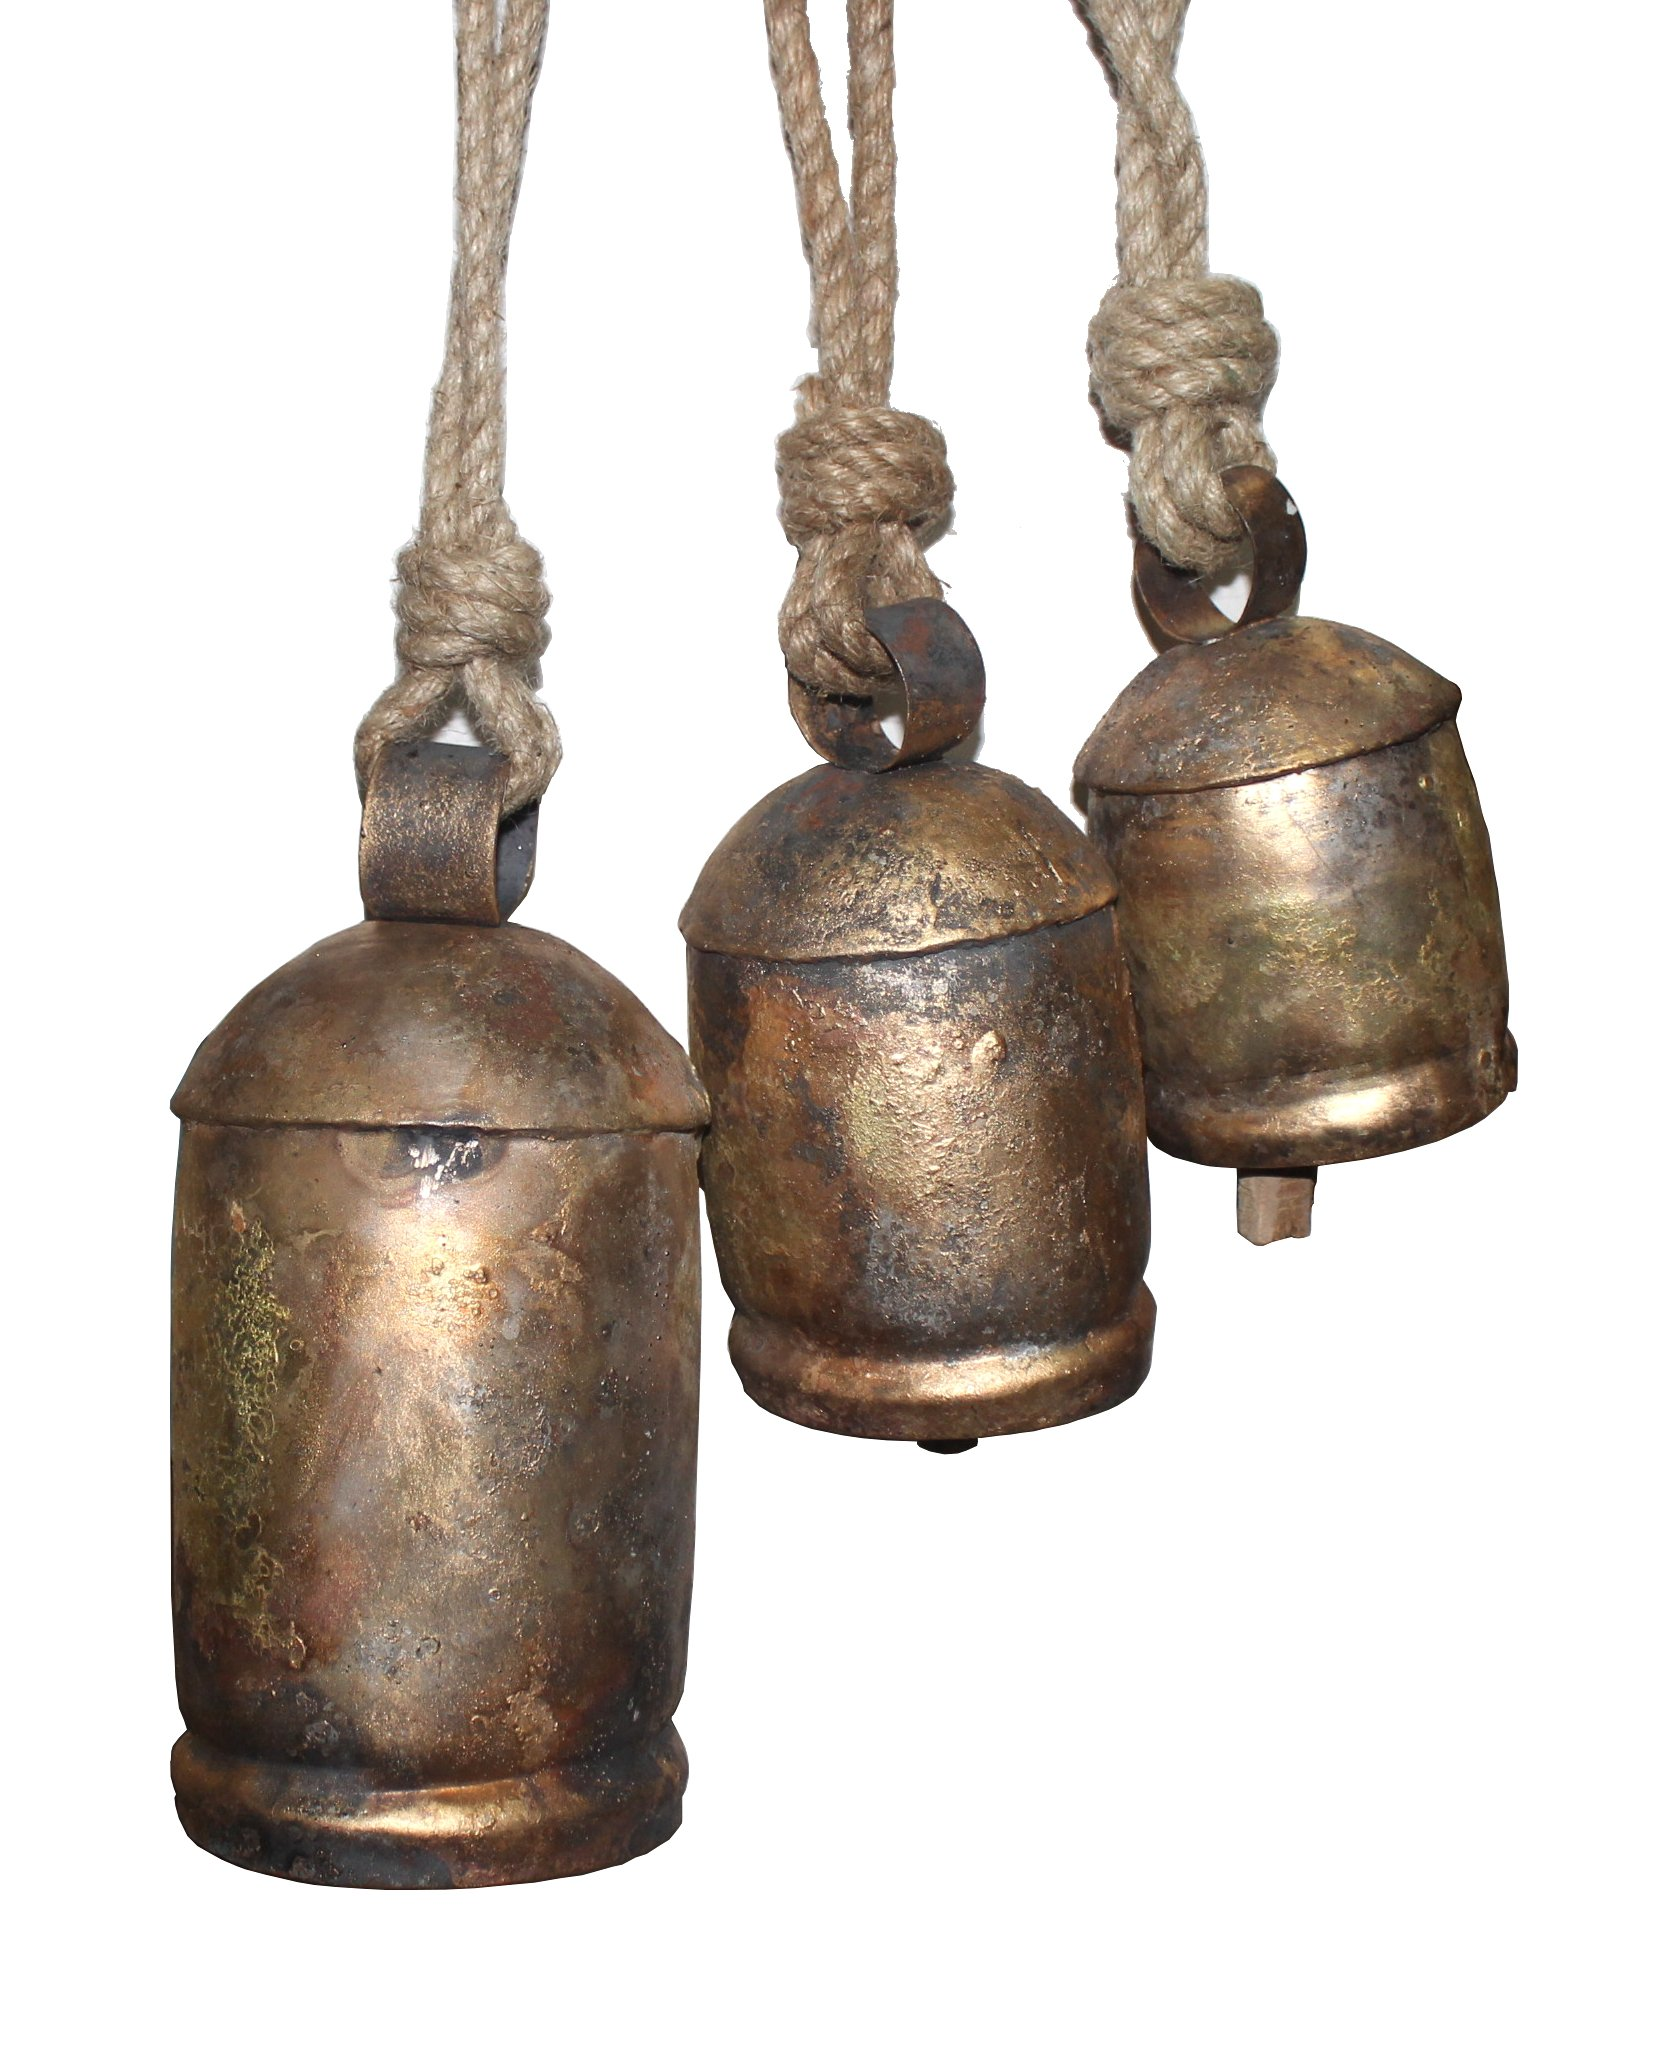 Crystalo - Set of 3 Harmony Bells - Wrought Iron with Brass Finish